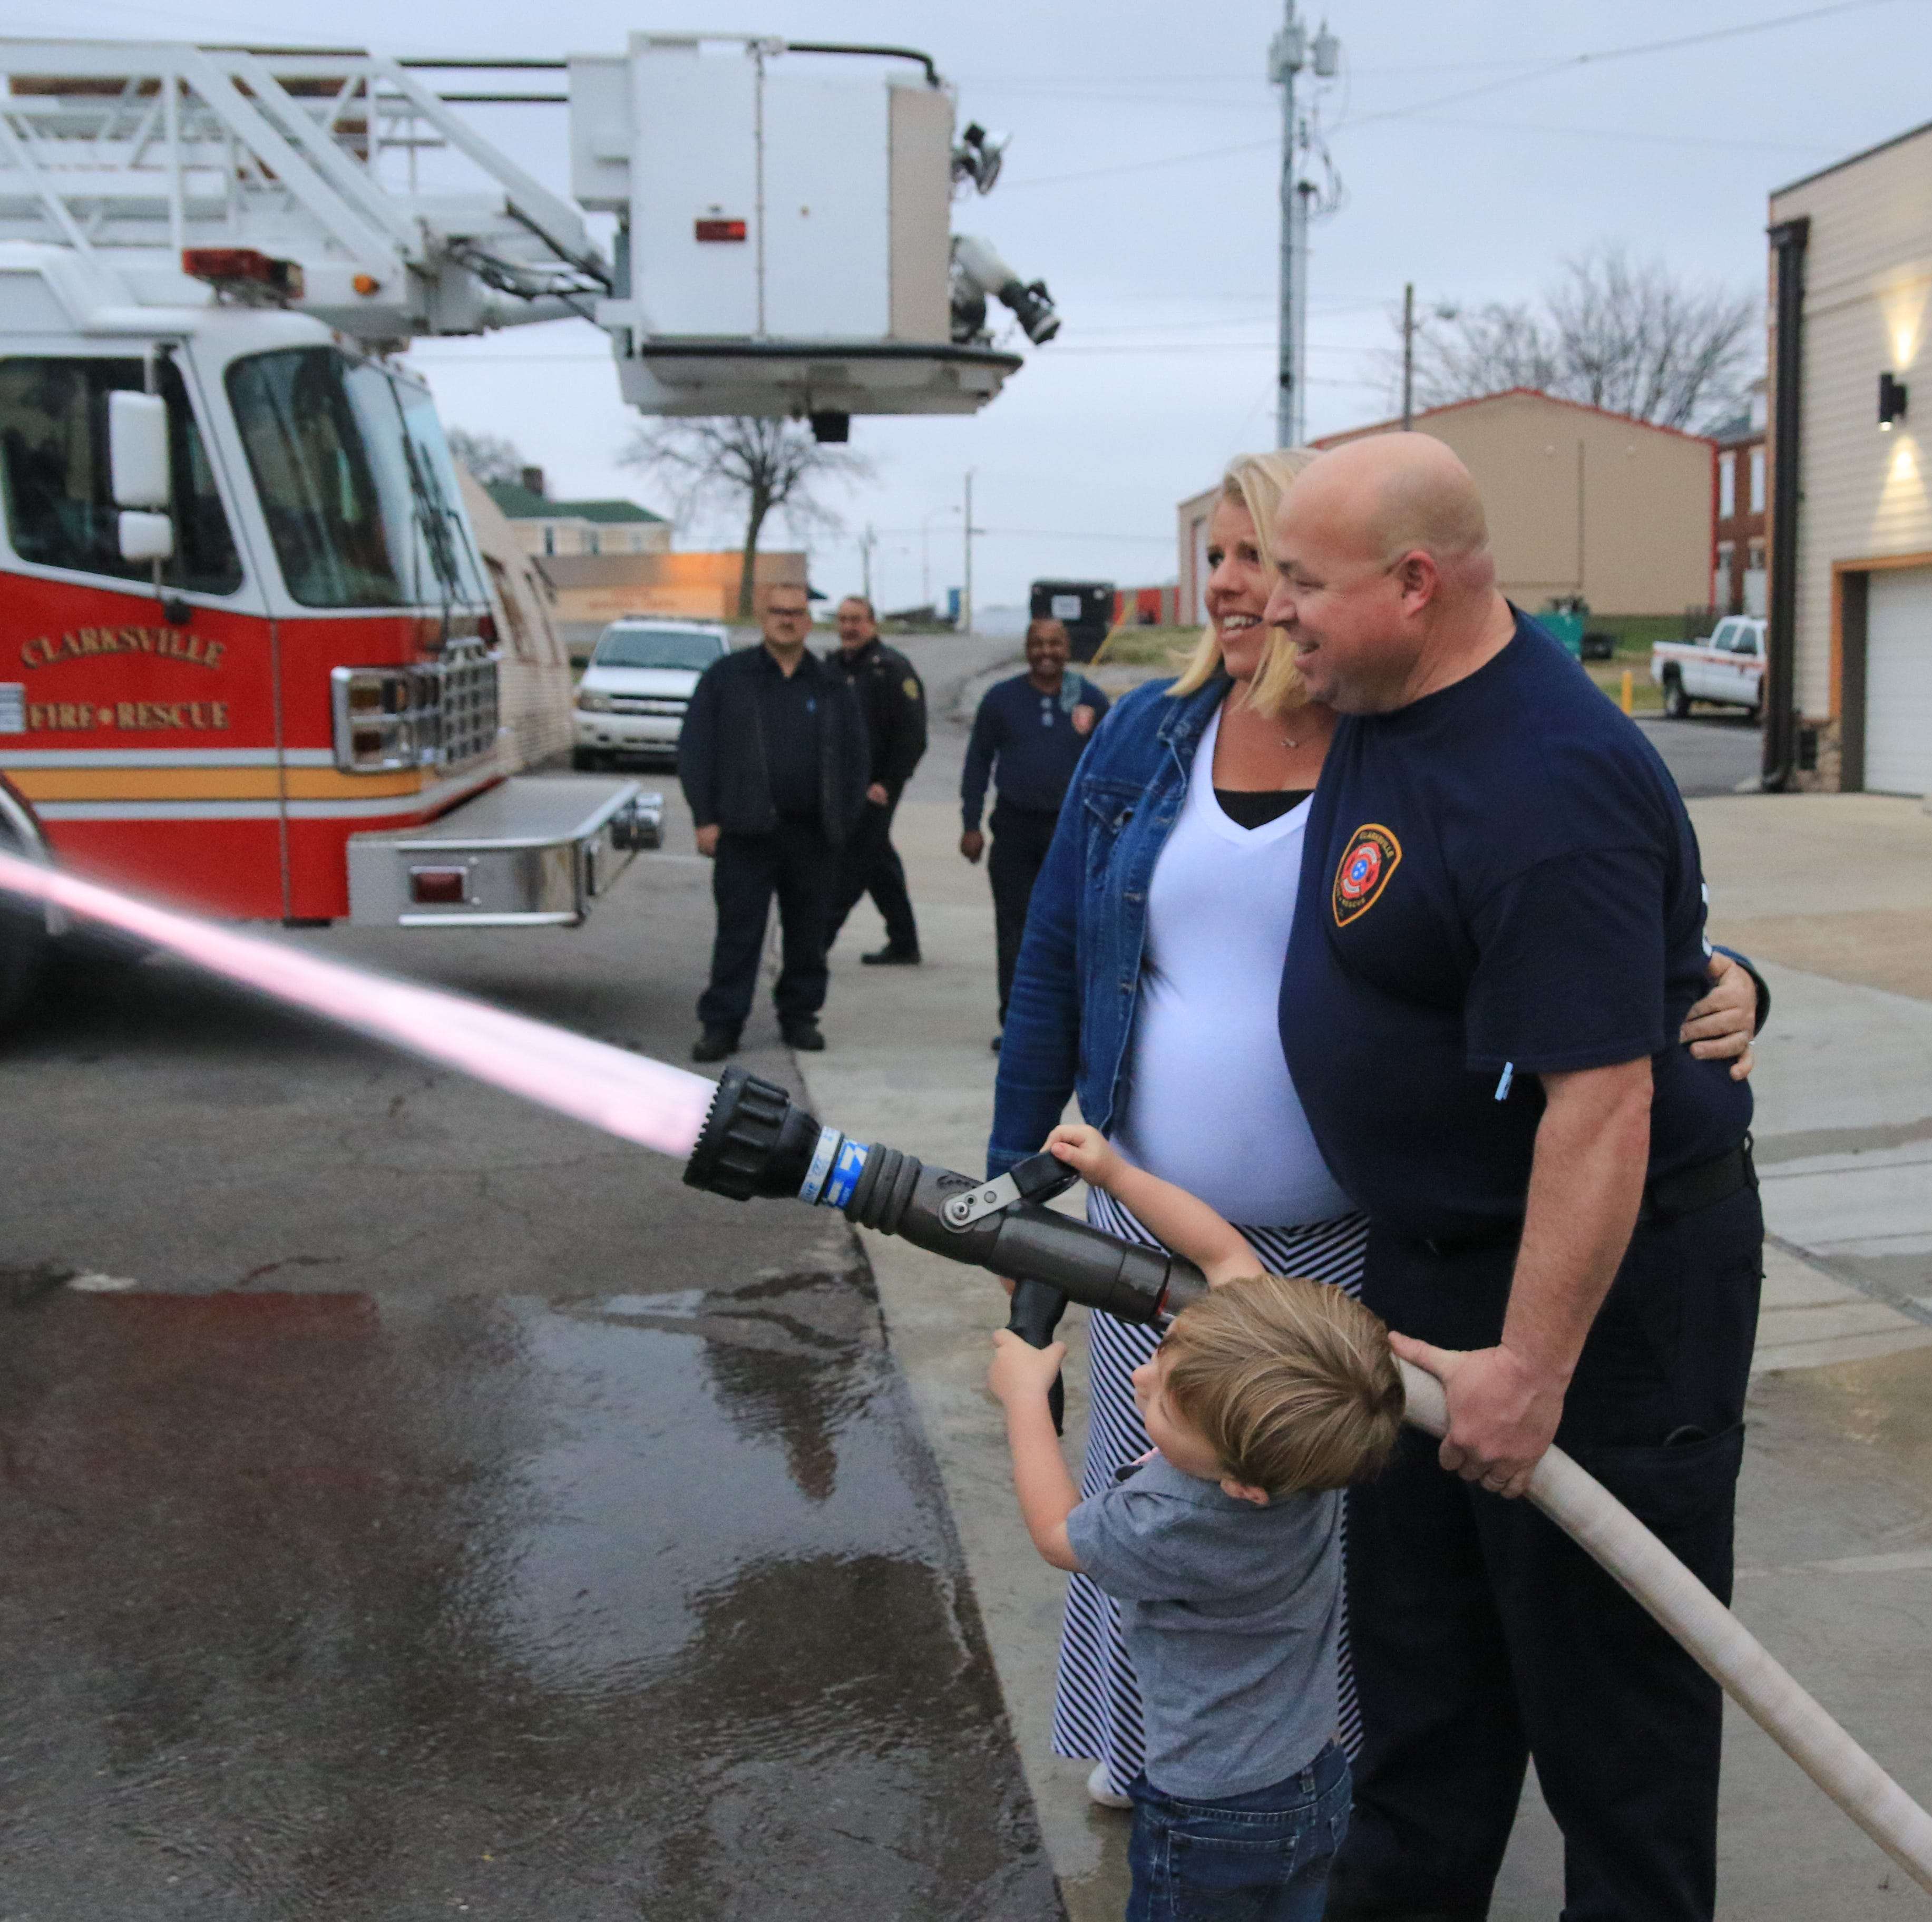 Gender reveal party: Fire hose water announces it's a girl — twin girls — for firefighter